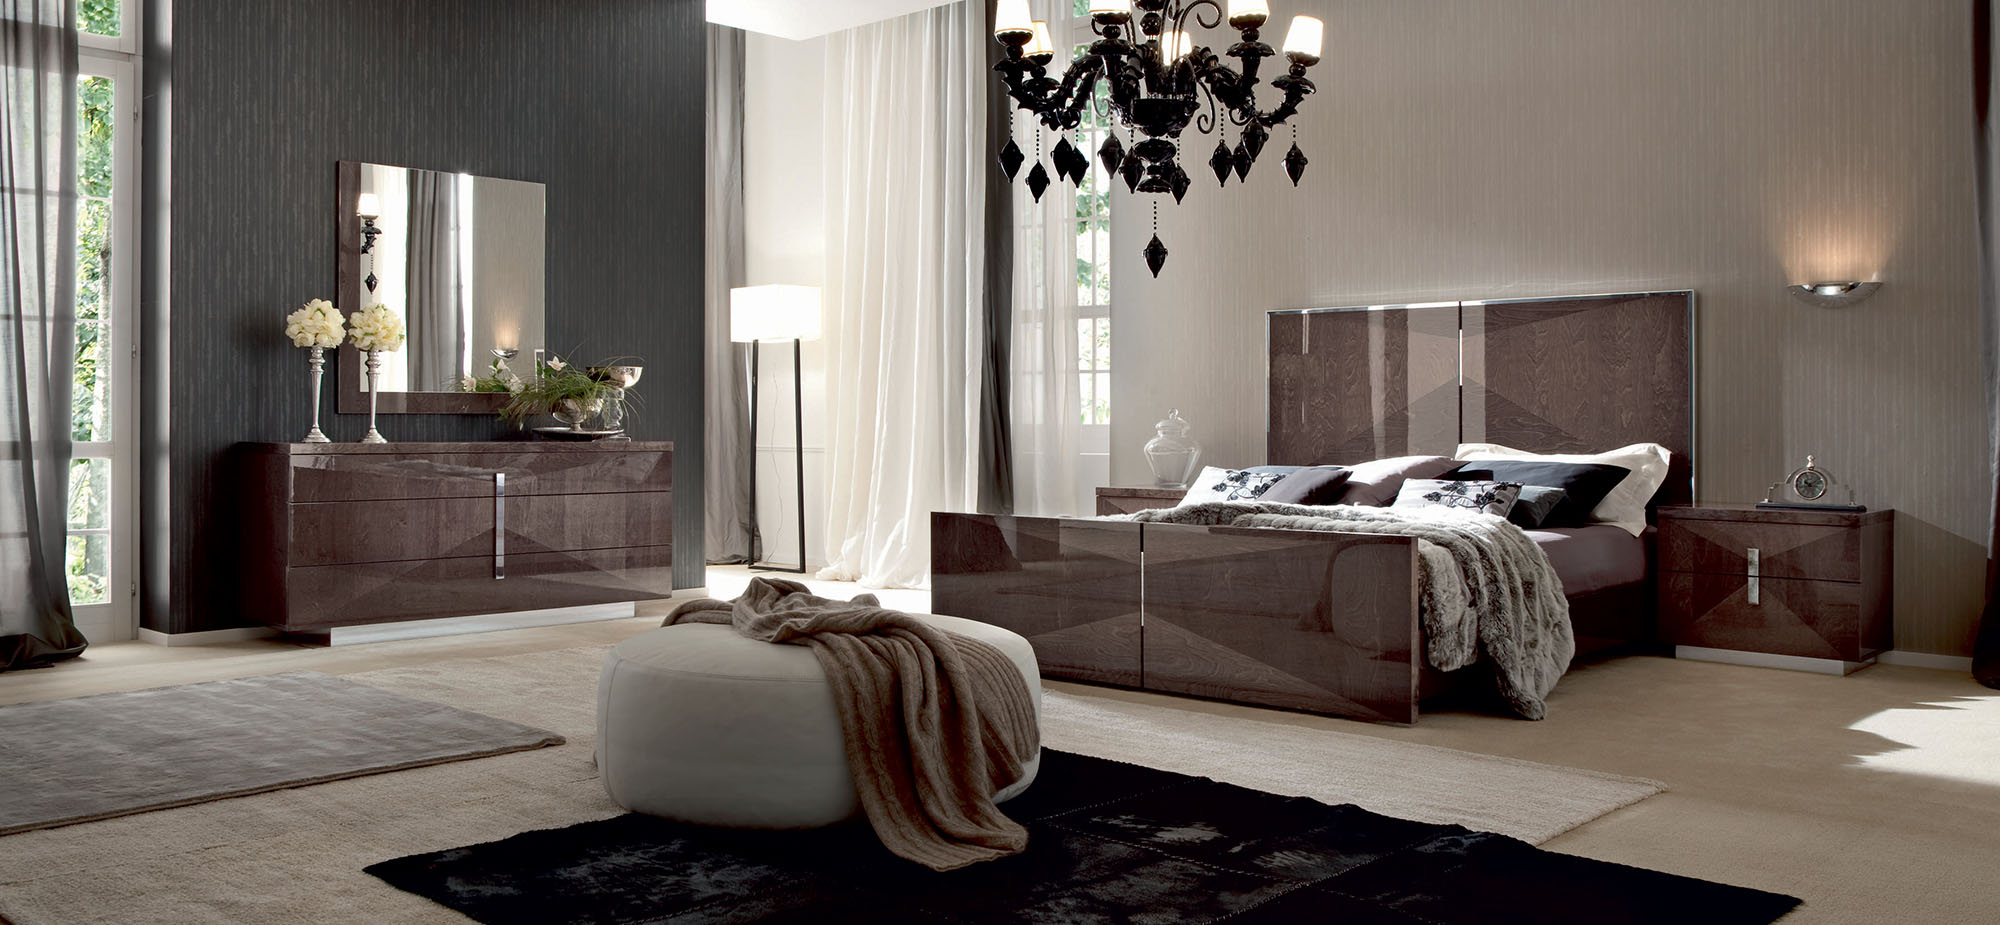 Gfurniture Windsor Ontario Modern Luxury Furniture Store